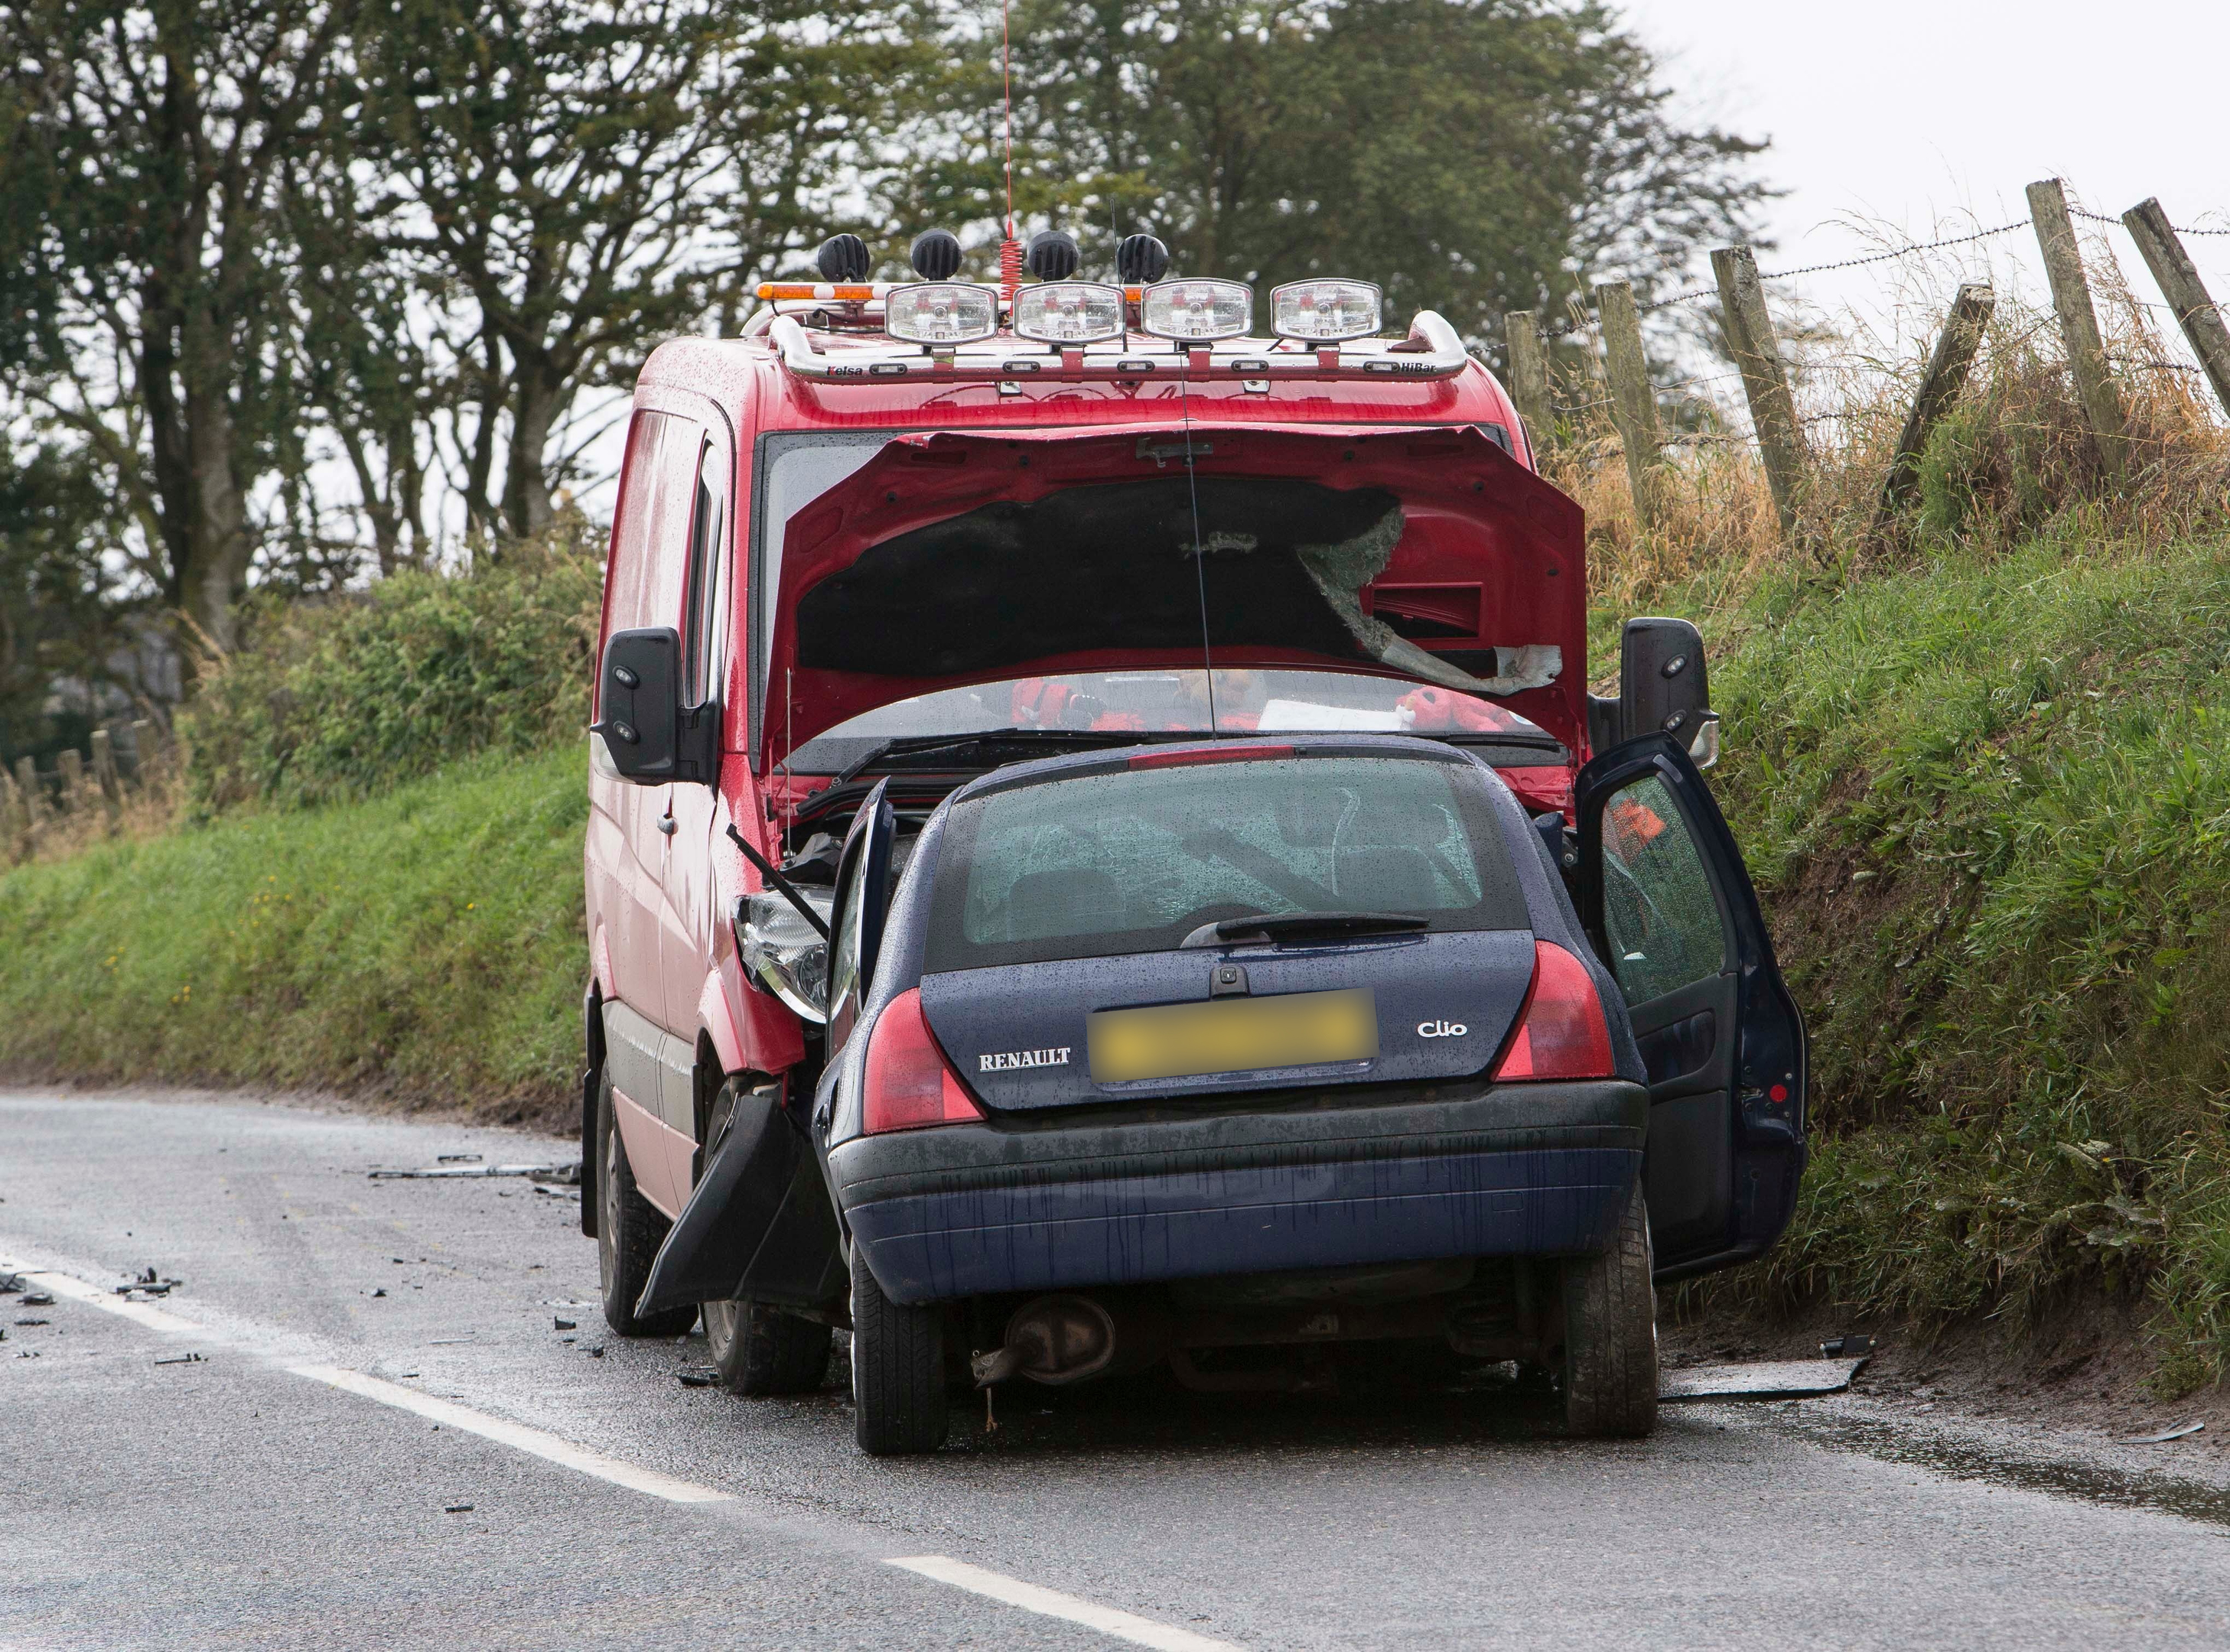 Police attend the scene of a two vehicle accident on the B9015